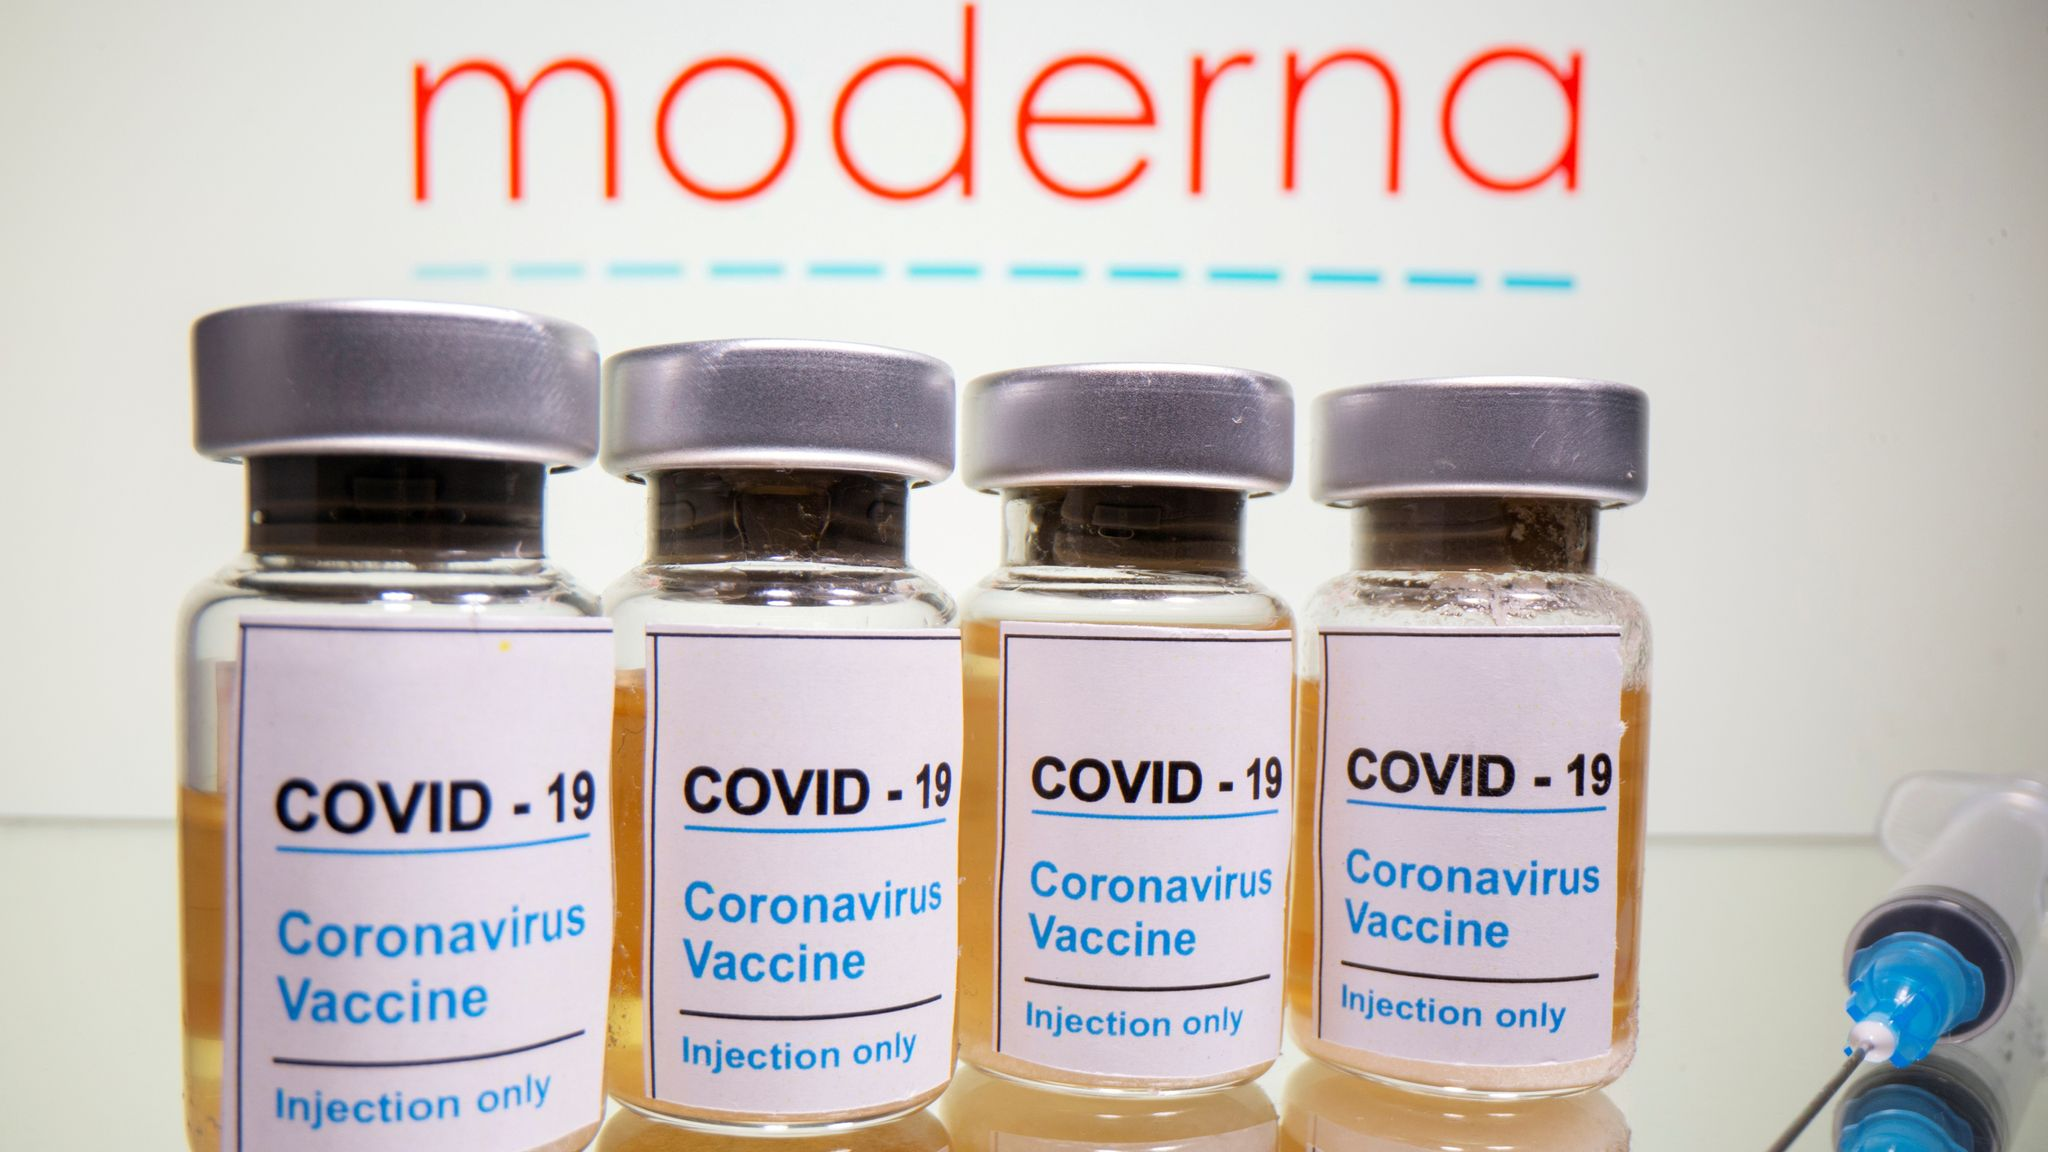 Covid 19 Uk Government Hopes To Ensure Access To Moderna Vaccine By Spring Next Year World News Sky News